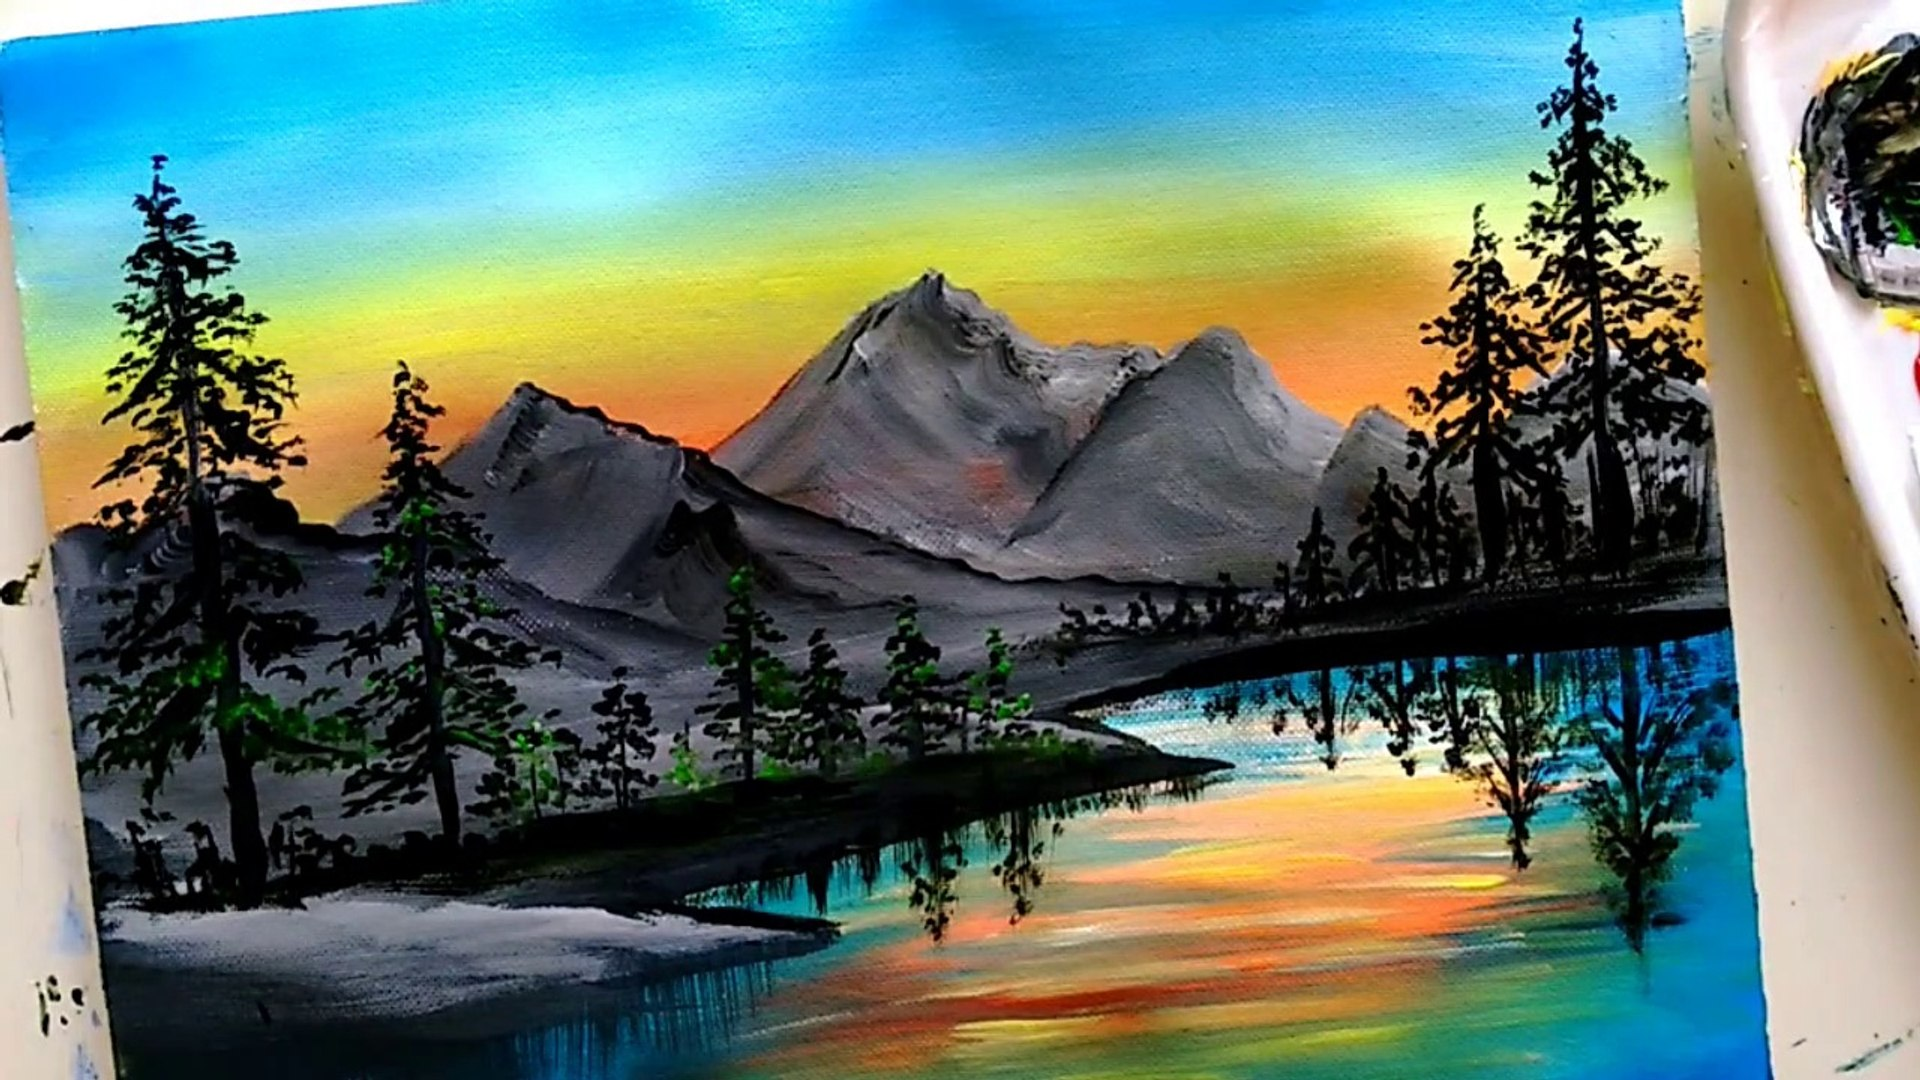 Picturesque Mountain Landscape Painting | Scenery Painting | Acrylic  Painting Tutorial - video Dailymotion